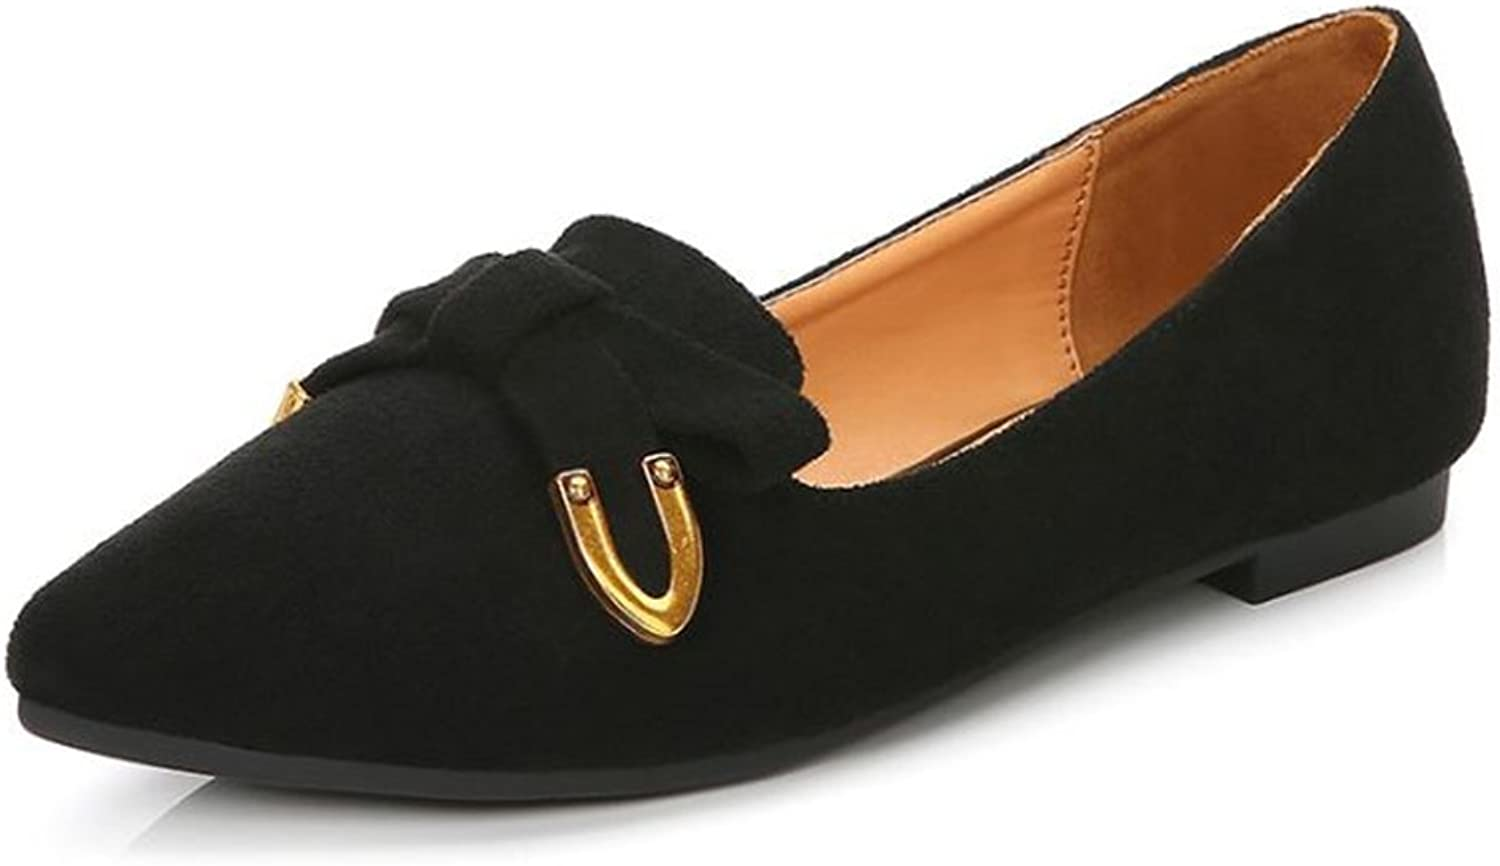 COLOV Women's Classic Comfort Soft Suede Pointy Toe Ballet Flat Ballerina Slip On shoes